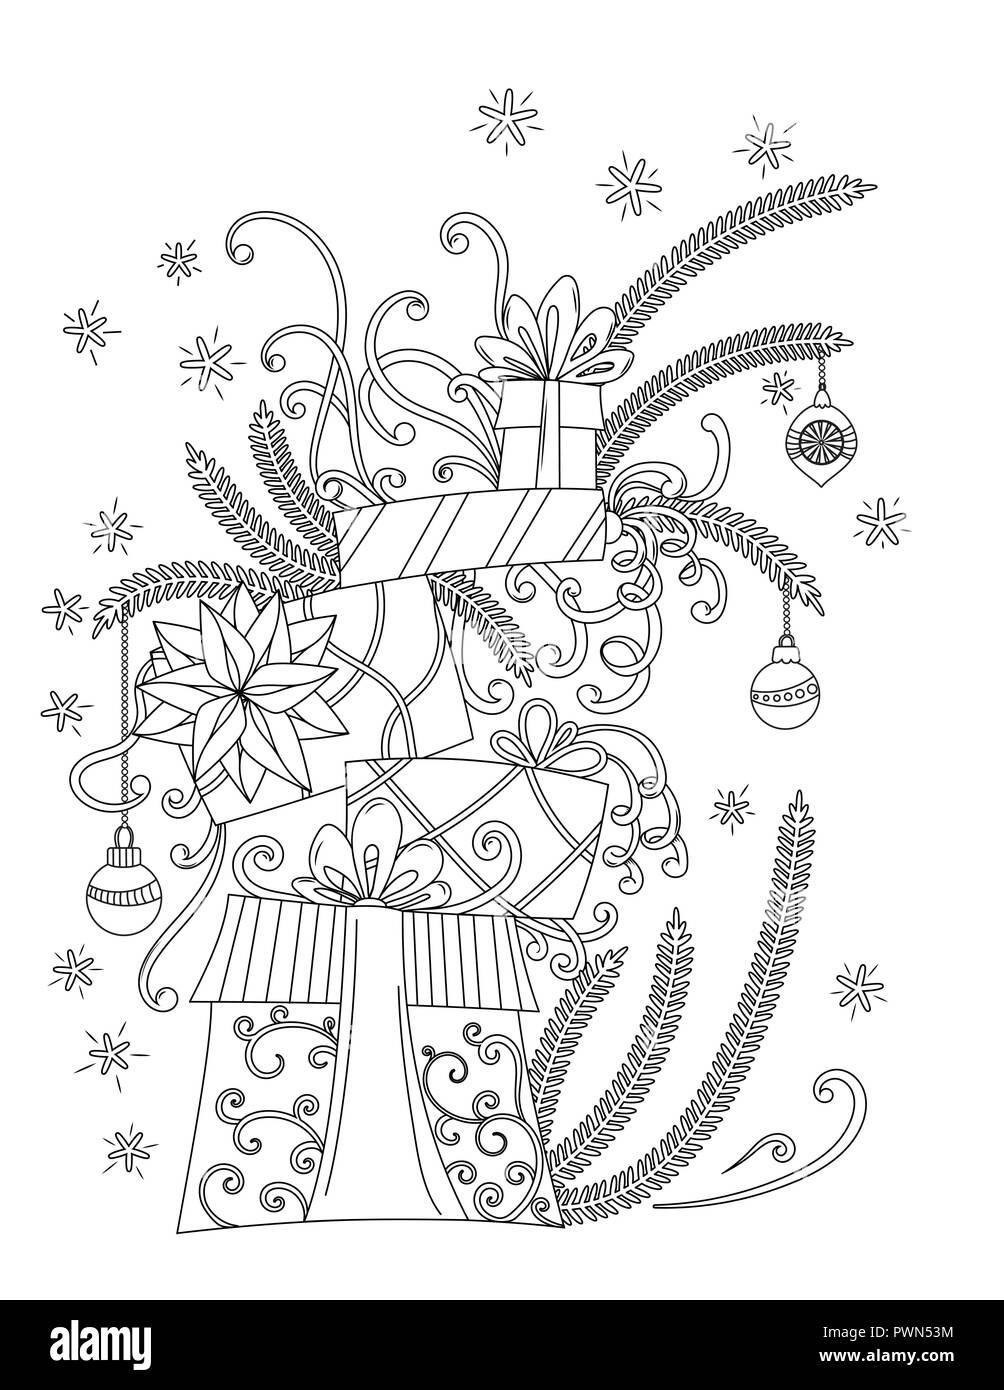 Christmas Coloring Pages Coloring Book For Adults Pile Of Holiday